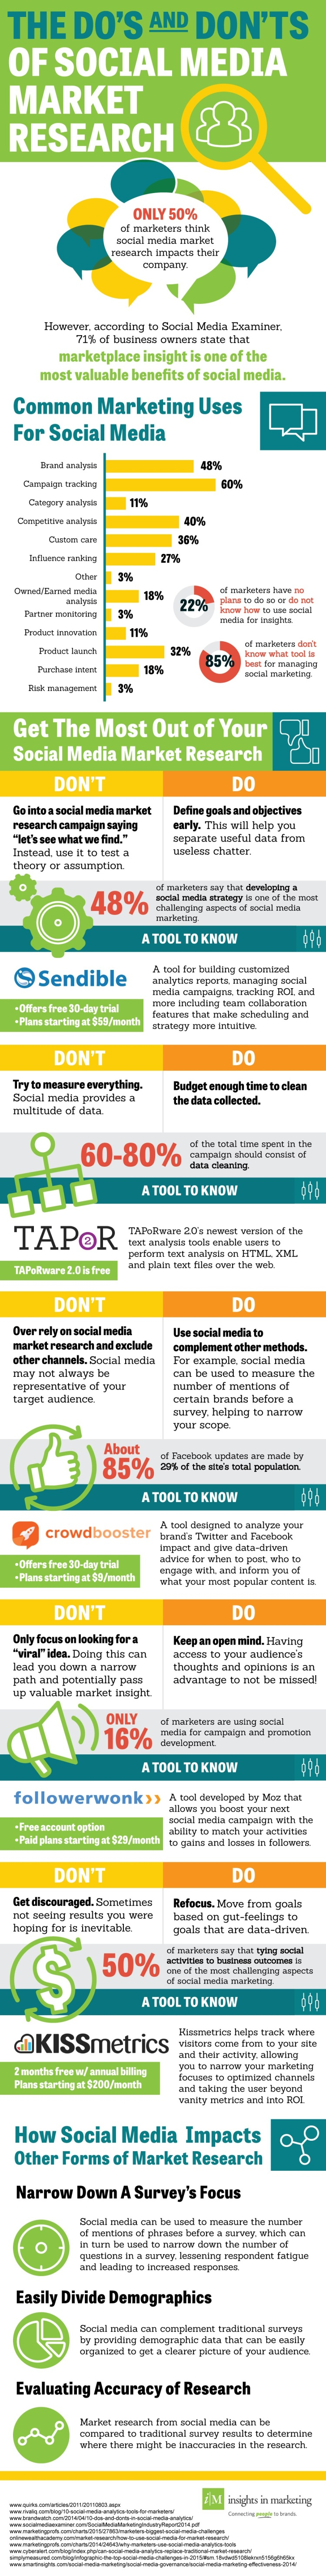 social media market research dos and donts infographic